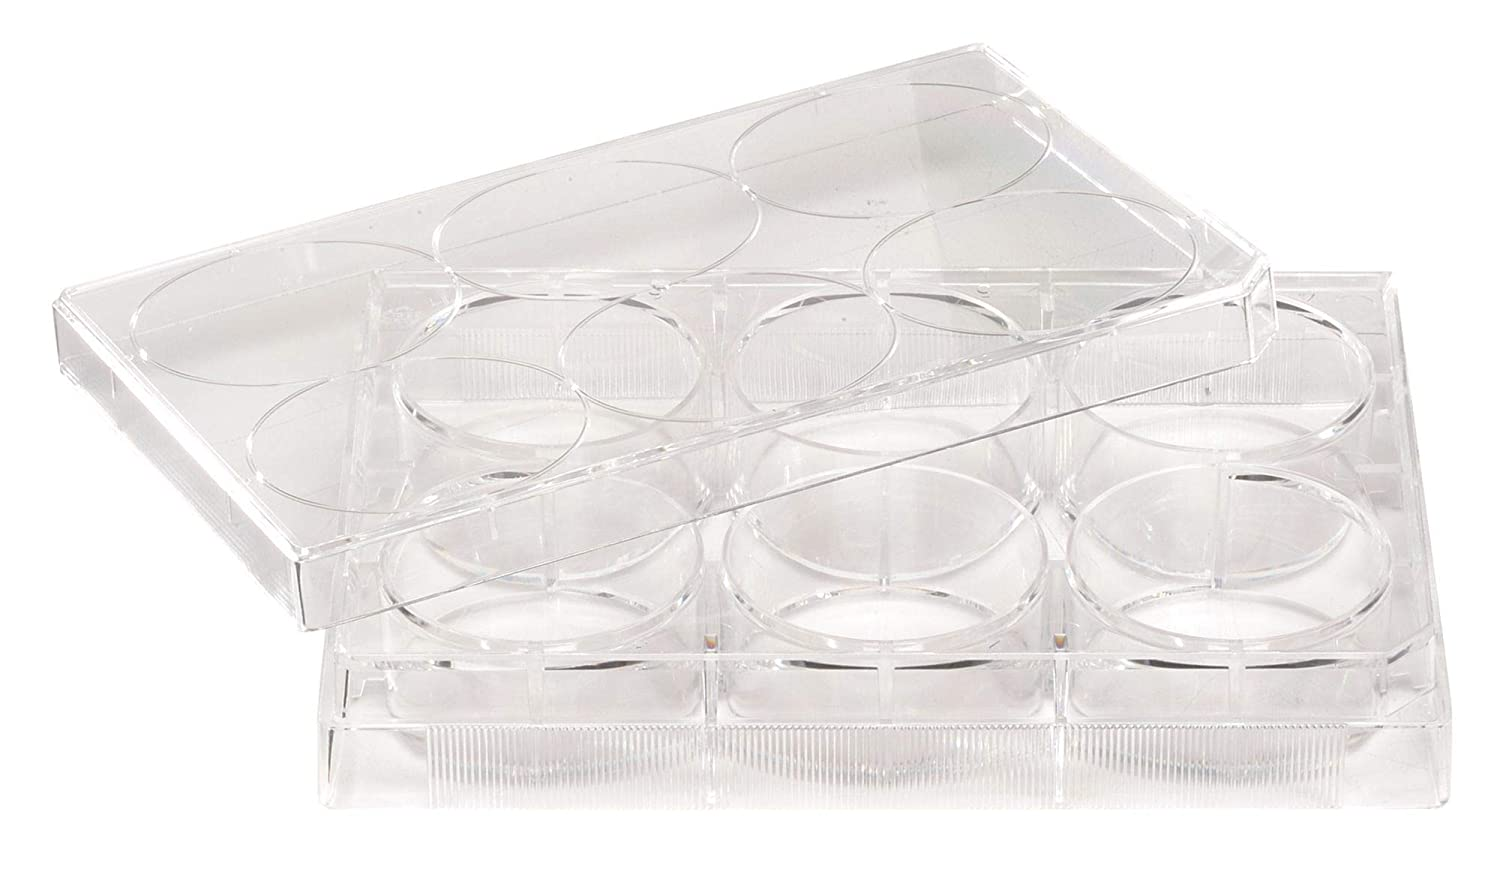 Celltreat 229512 12 Sale Max 40% OFF item Well Non-treated Bottom Plate Lid Flat with